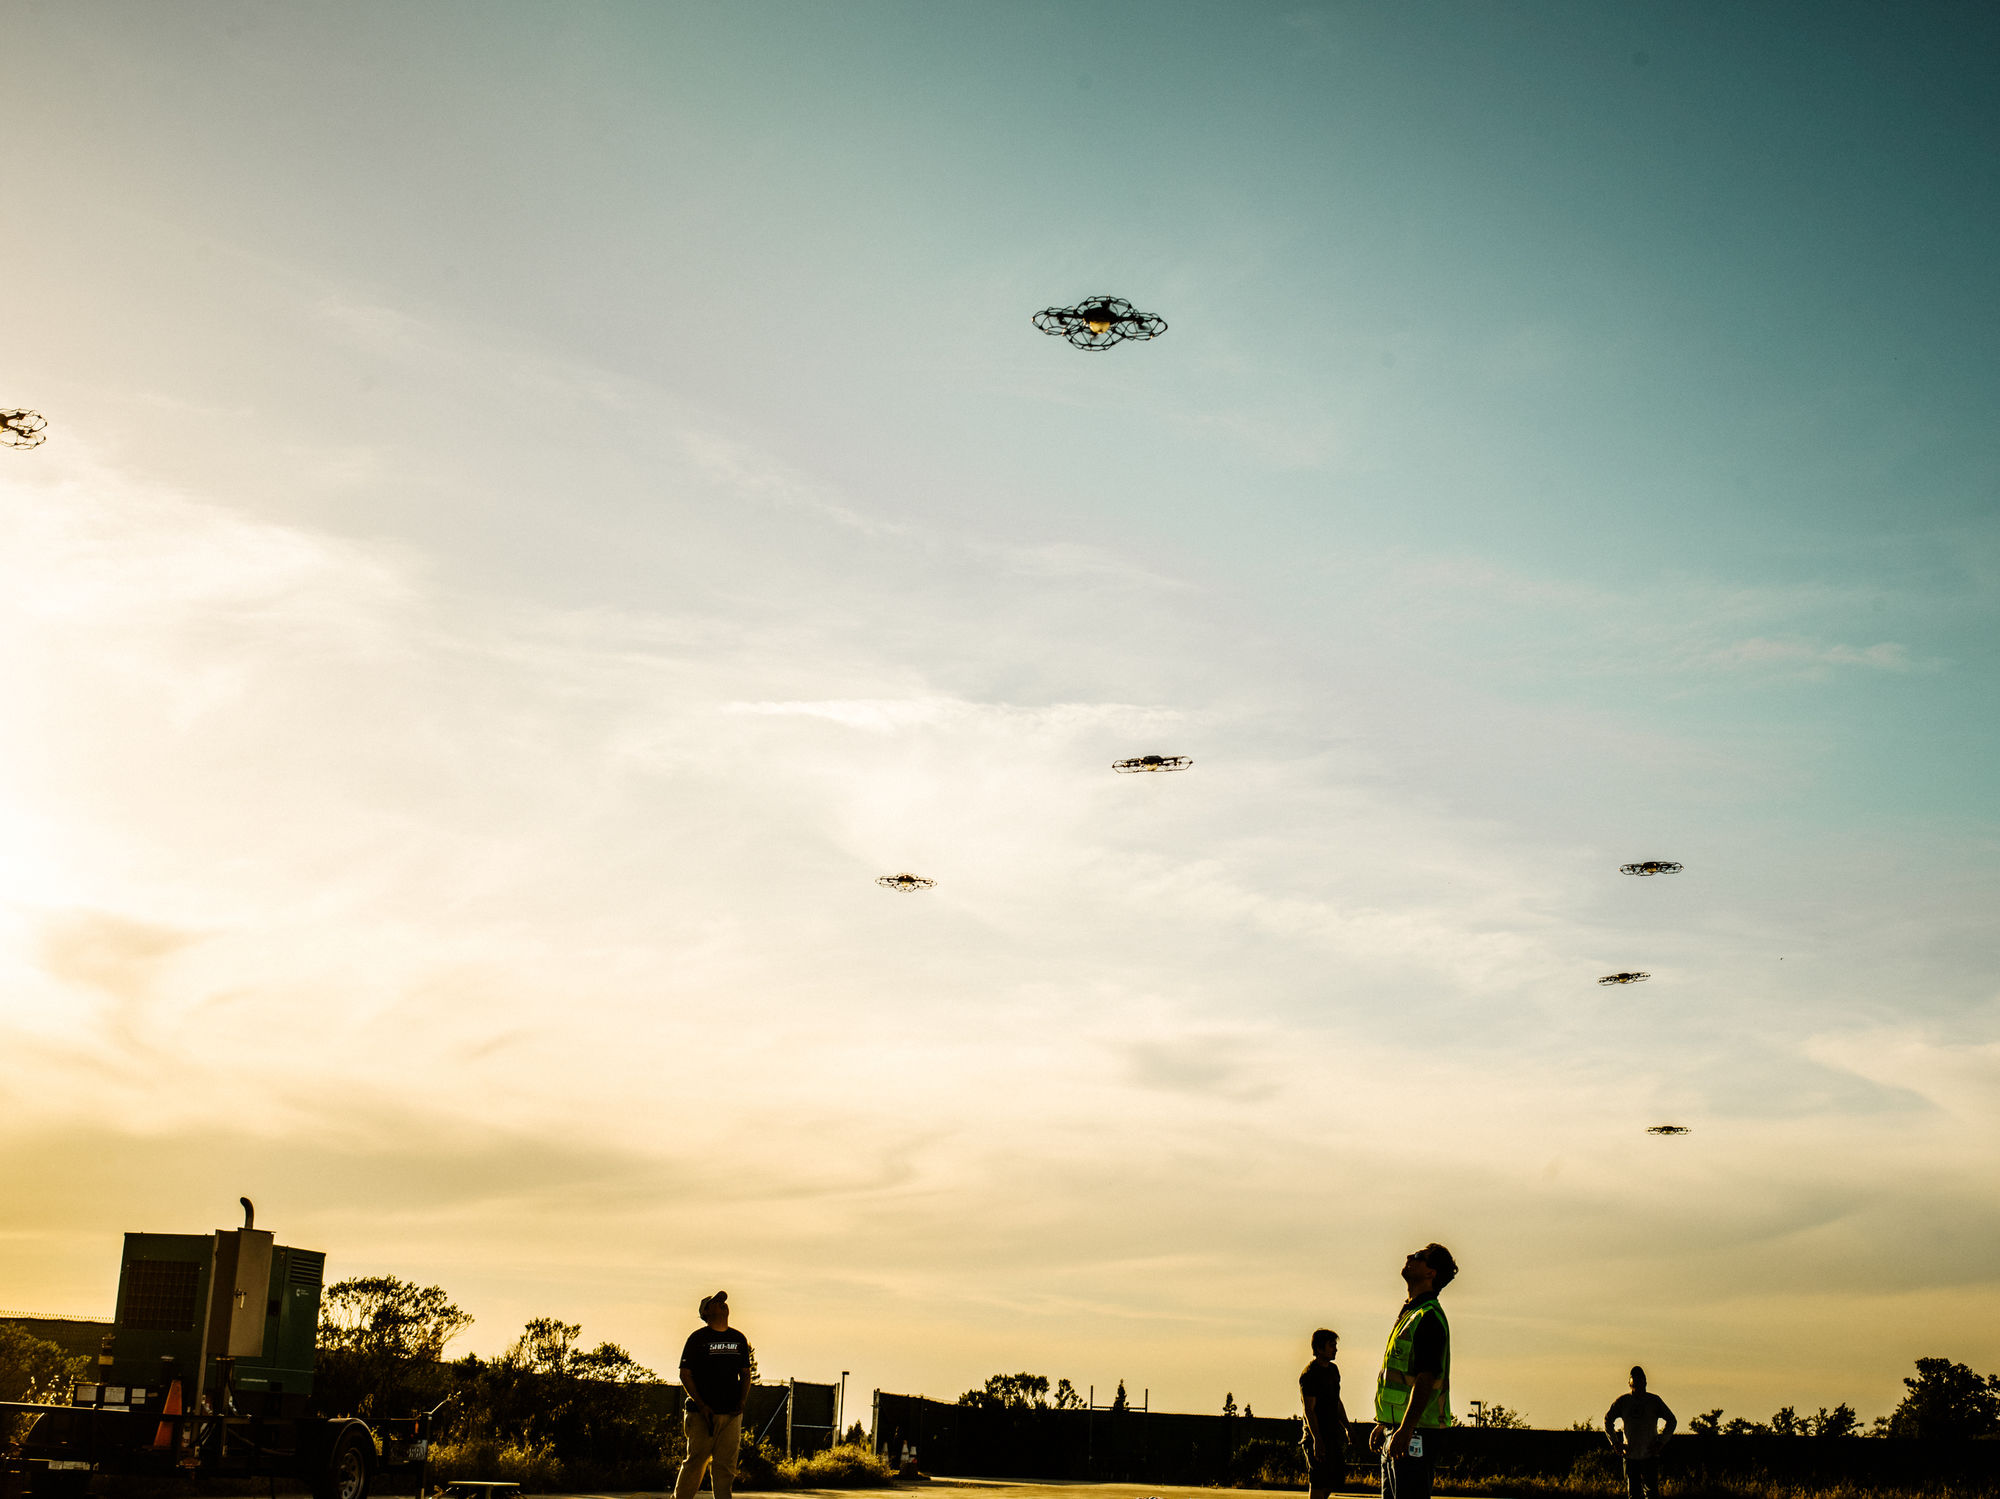 Jake Stangel c/o GIANT ARTISTS photographed one of the largest drone shows ever produced in the US for Time Magazine's Special Report: The Age of Drones.